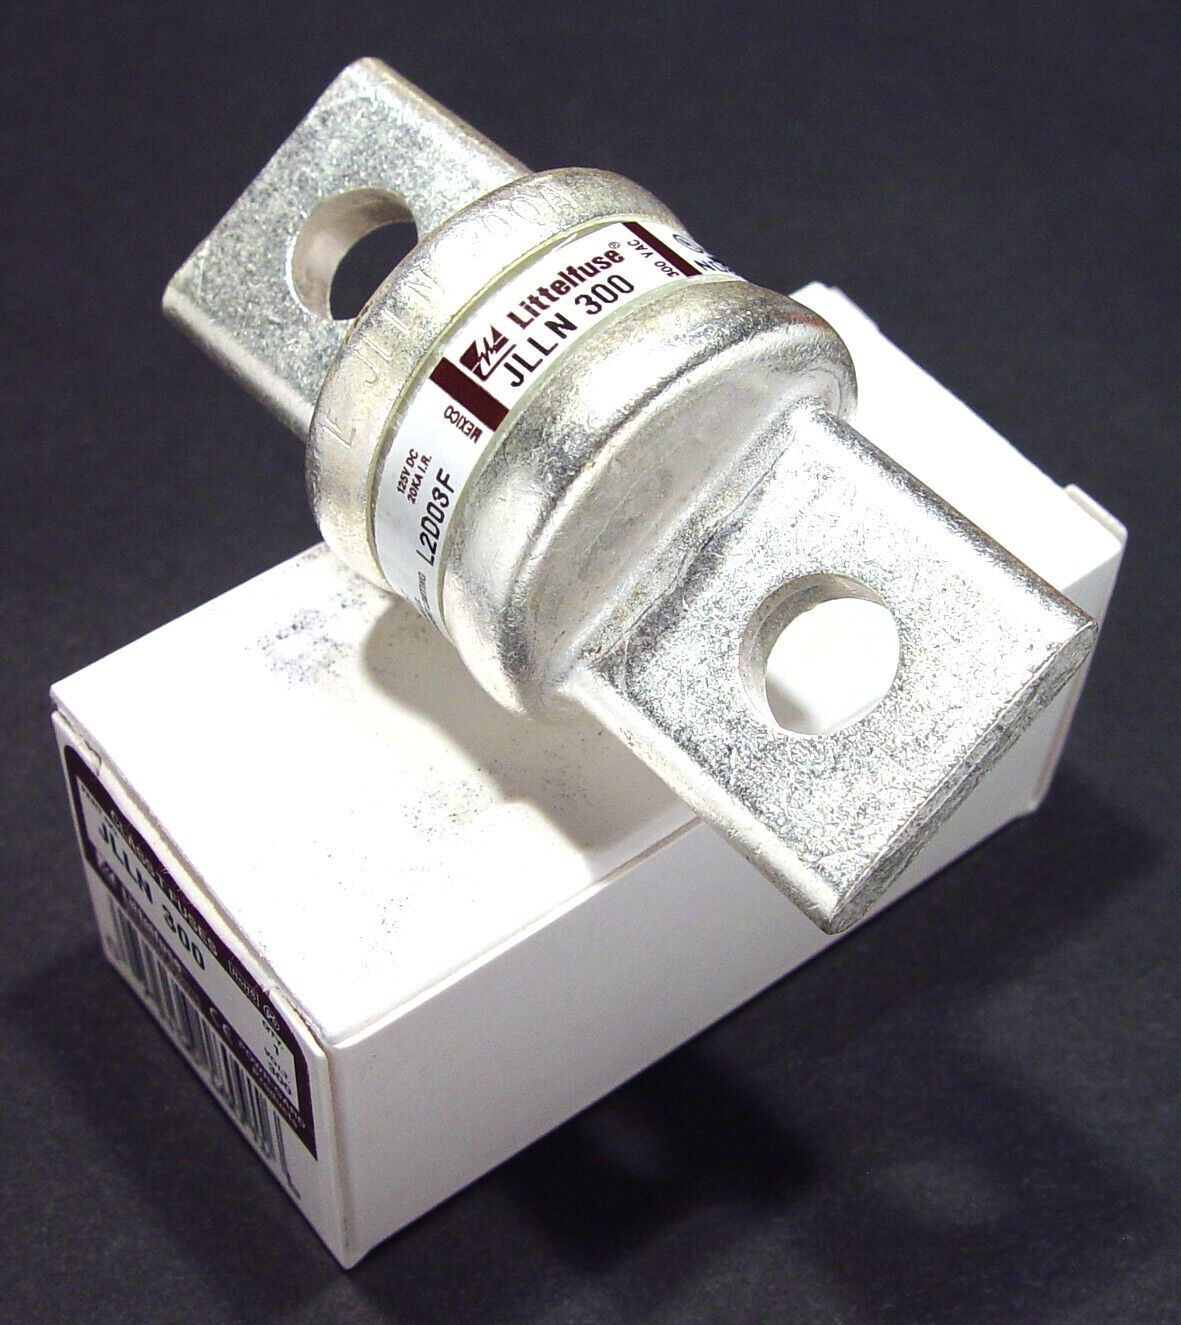 300 Amp Class T Fuse Jlln Littelfuse Dc Rated Boat Rv Or Solar In Box